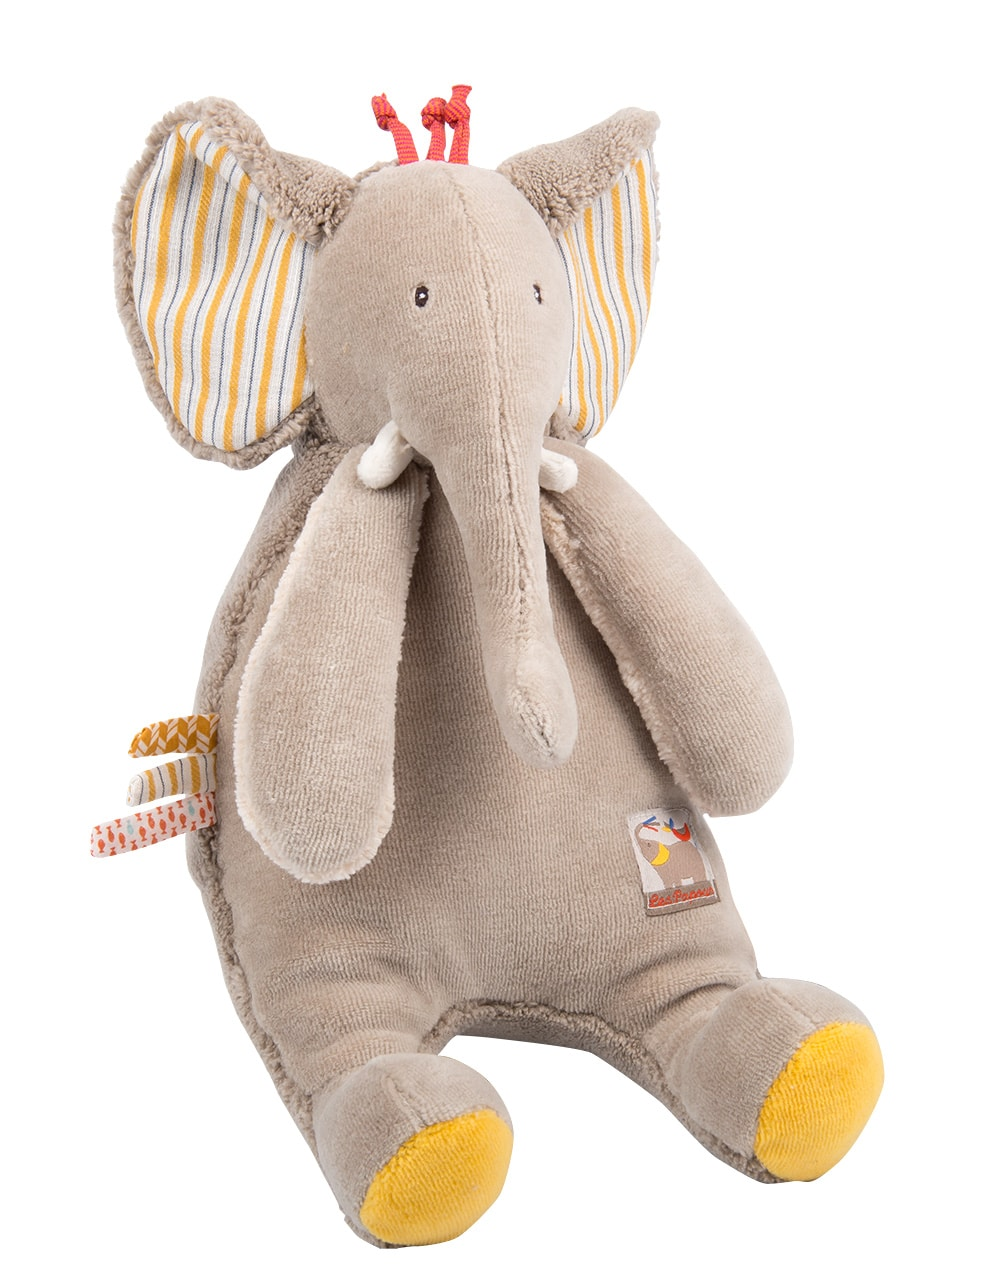 Les Papoum elephant doll - Moulin Roty